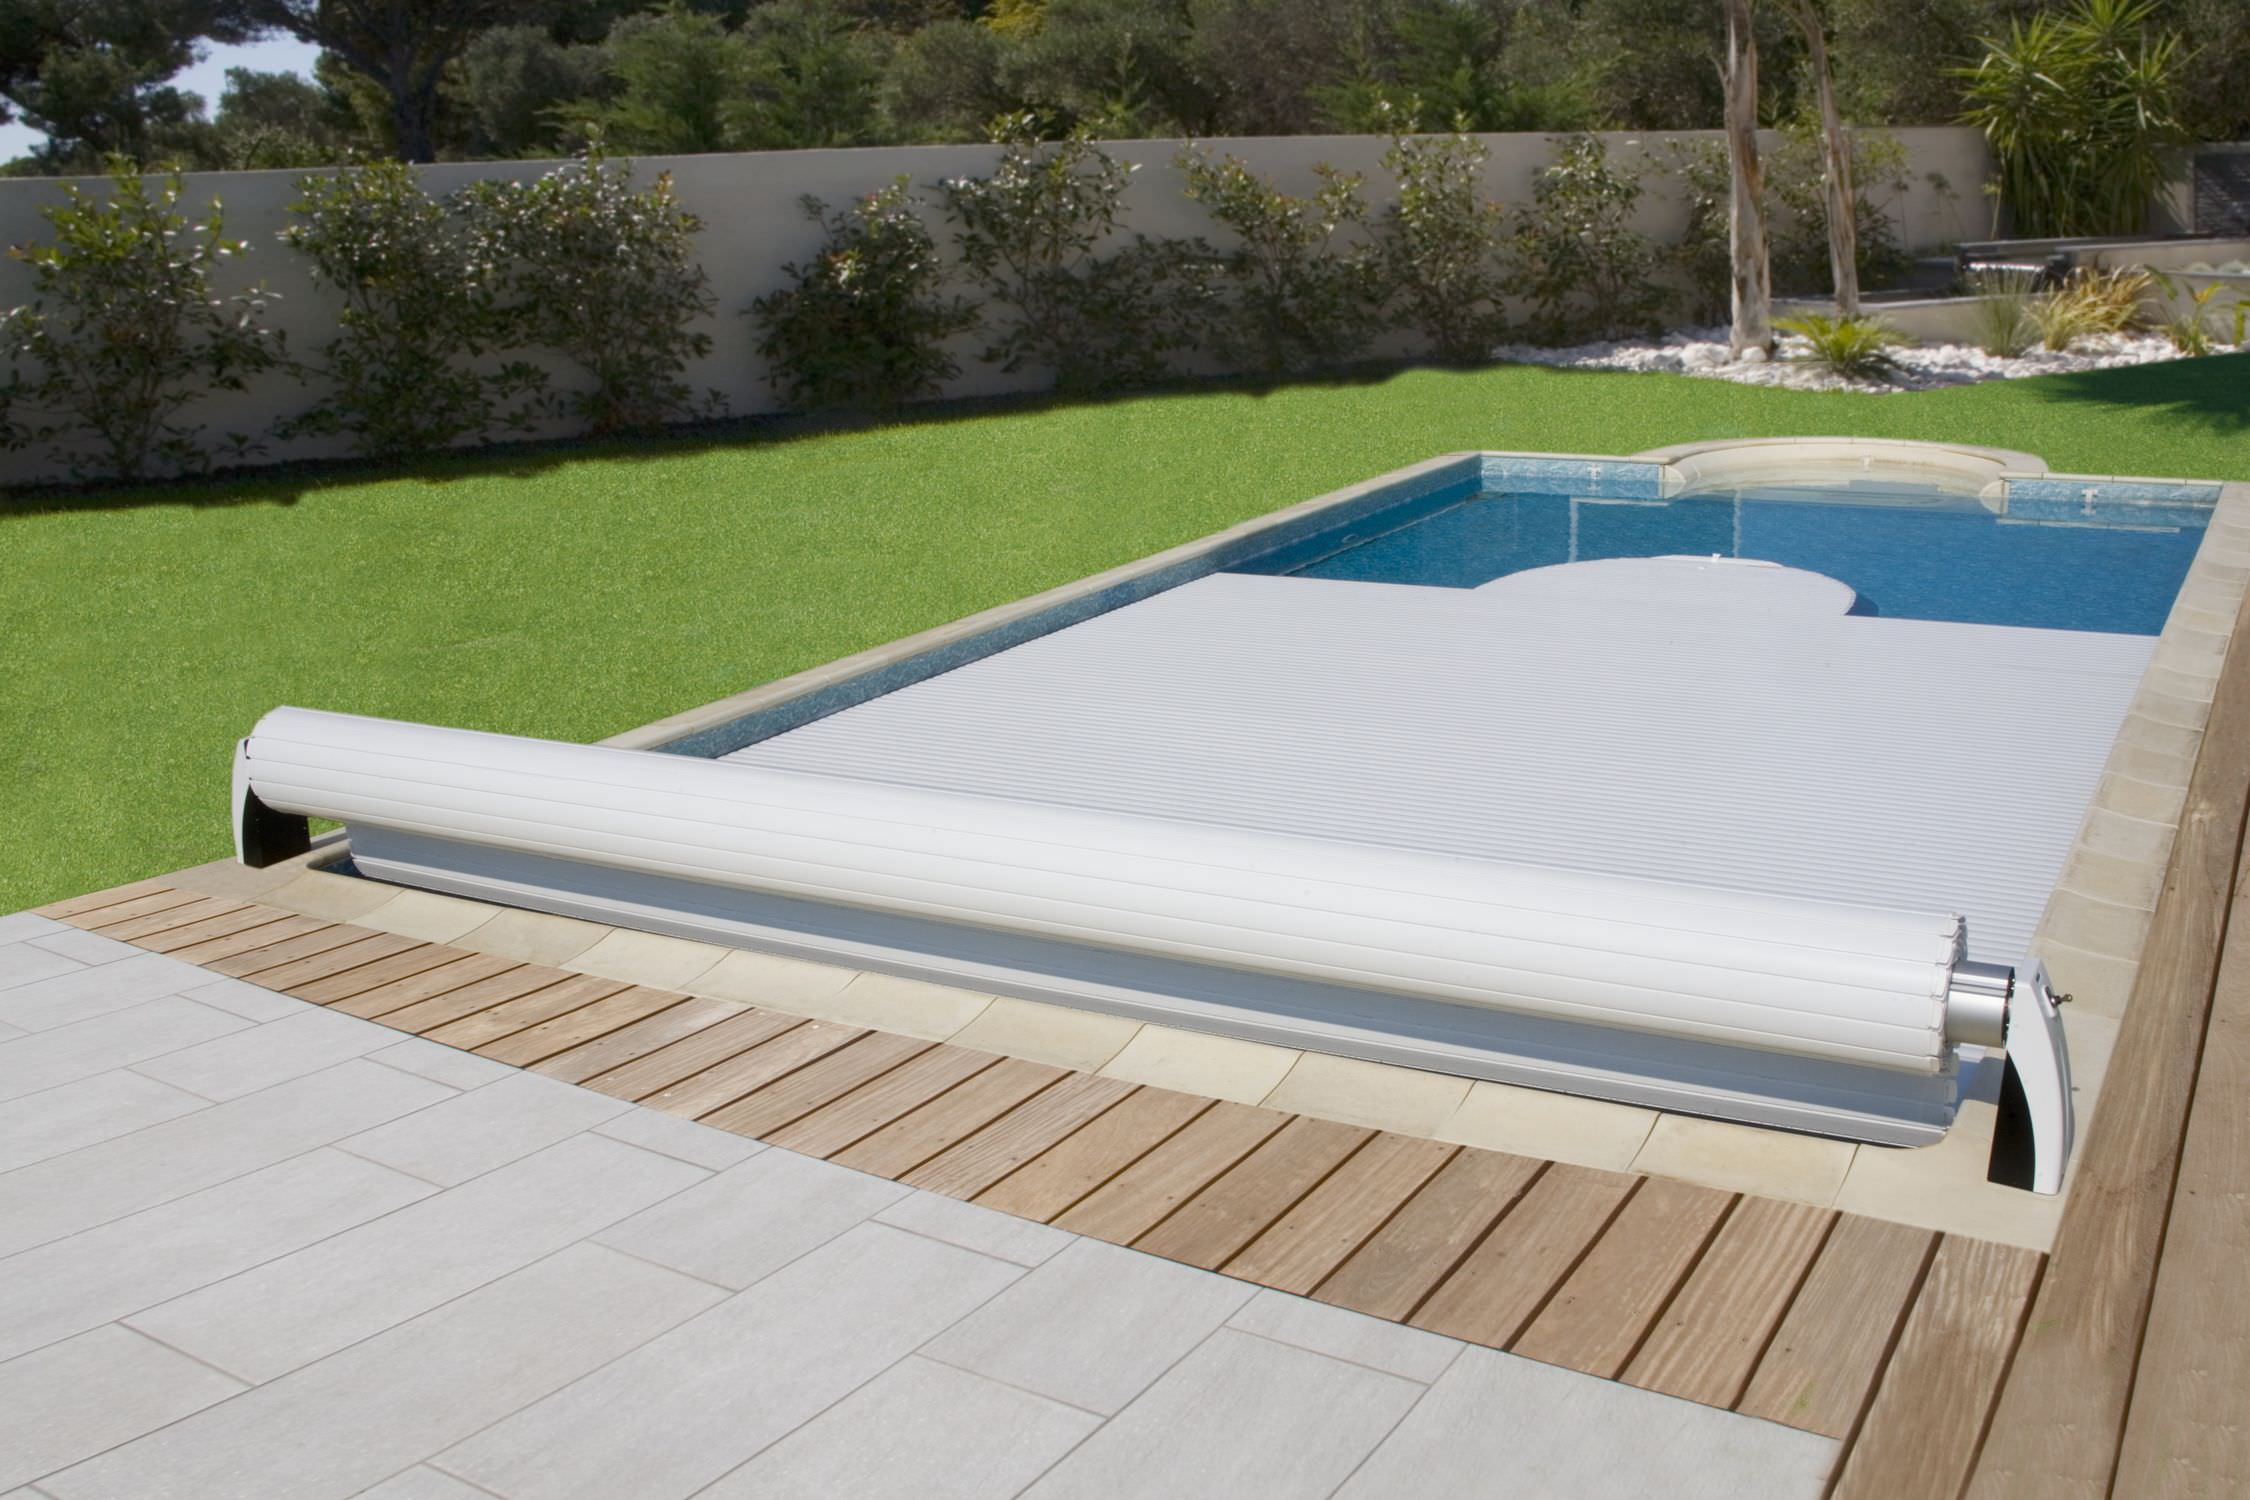 Cheap Pool Covers Above Ground Pools >> Automatic Swimming Pool Cover Security Slatted For Above